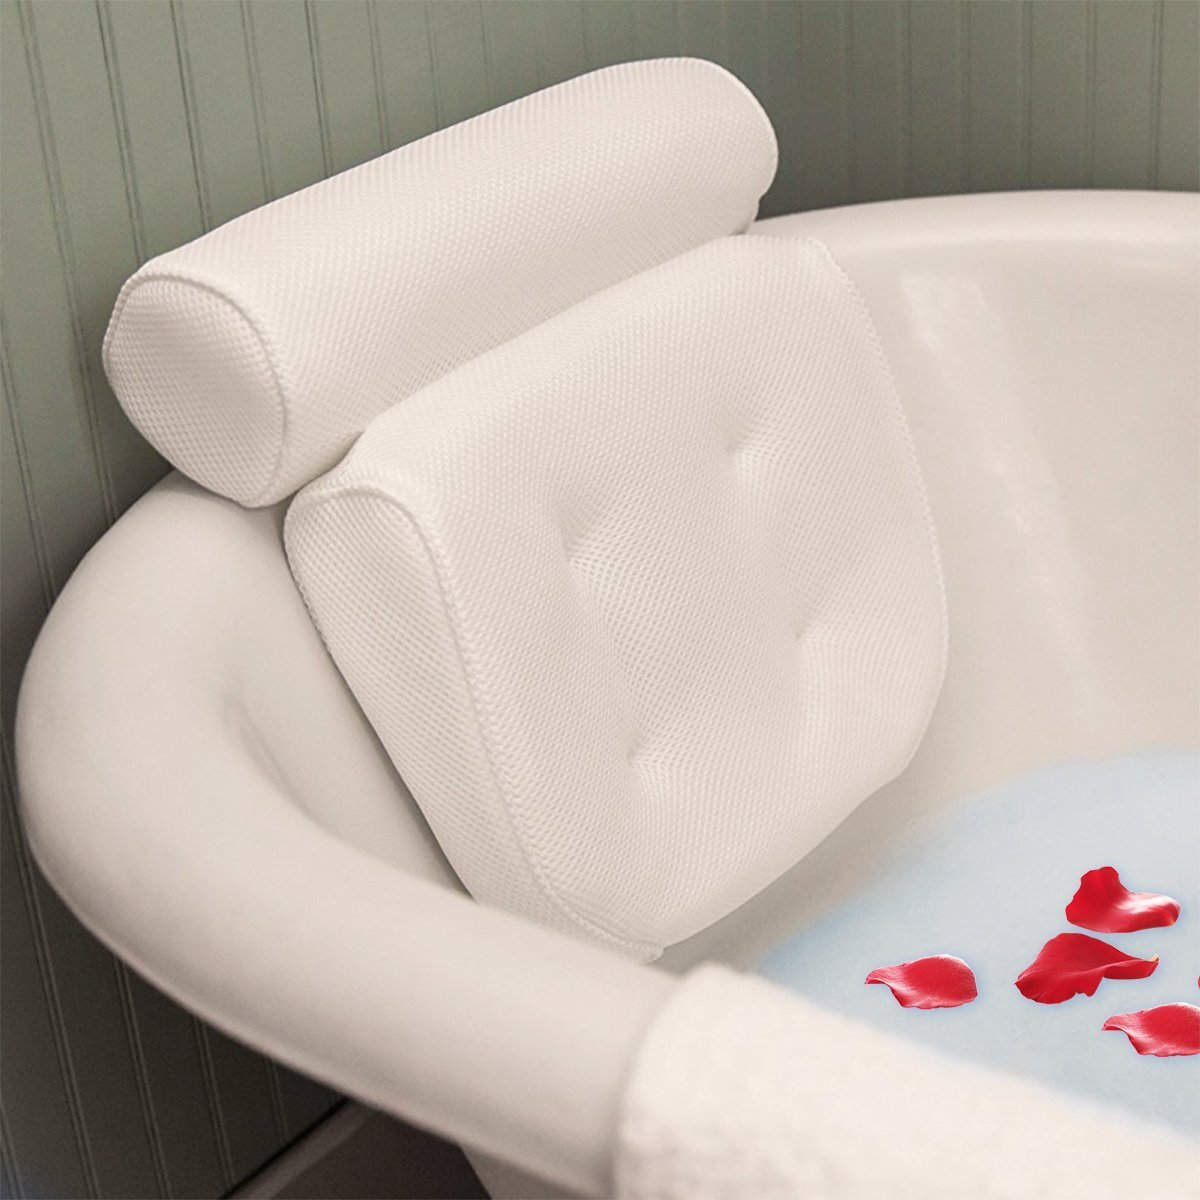 Essort Spa Bath Pillow, PU Bath Cushion with Non-Slip Suction Cups, Home Spa Headrest for Ultimate Relaxation, Providing Head, Neck, Back and Shoulders Support, 10.63'' x 5.51'' x 1.97'' White ESSORTLK13UW1893